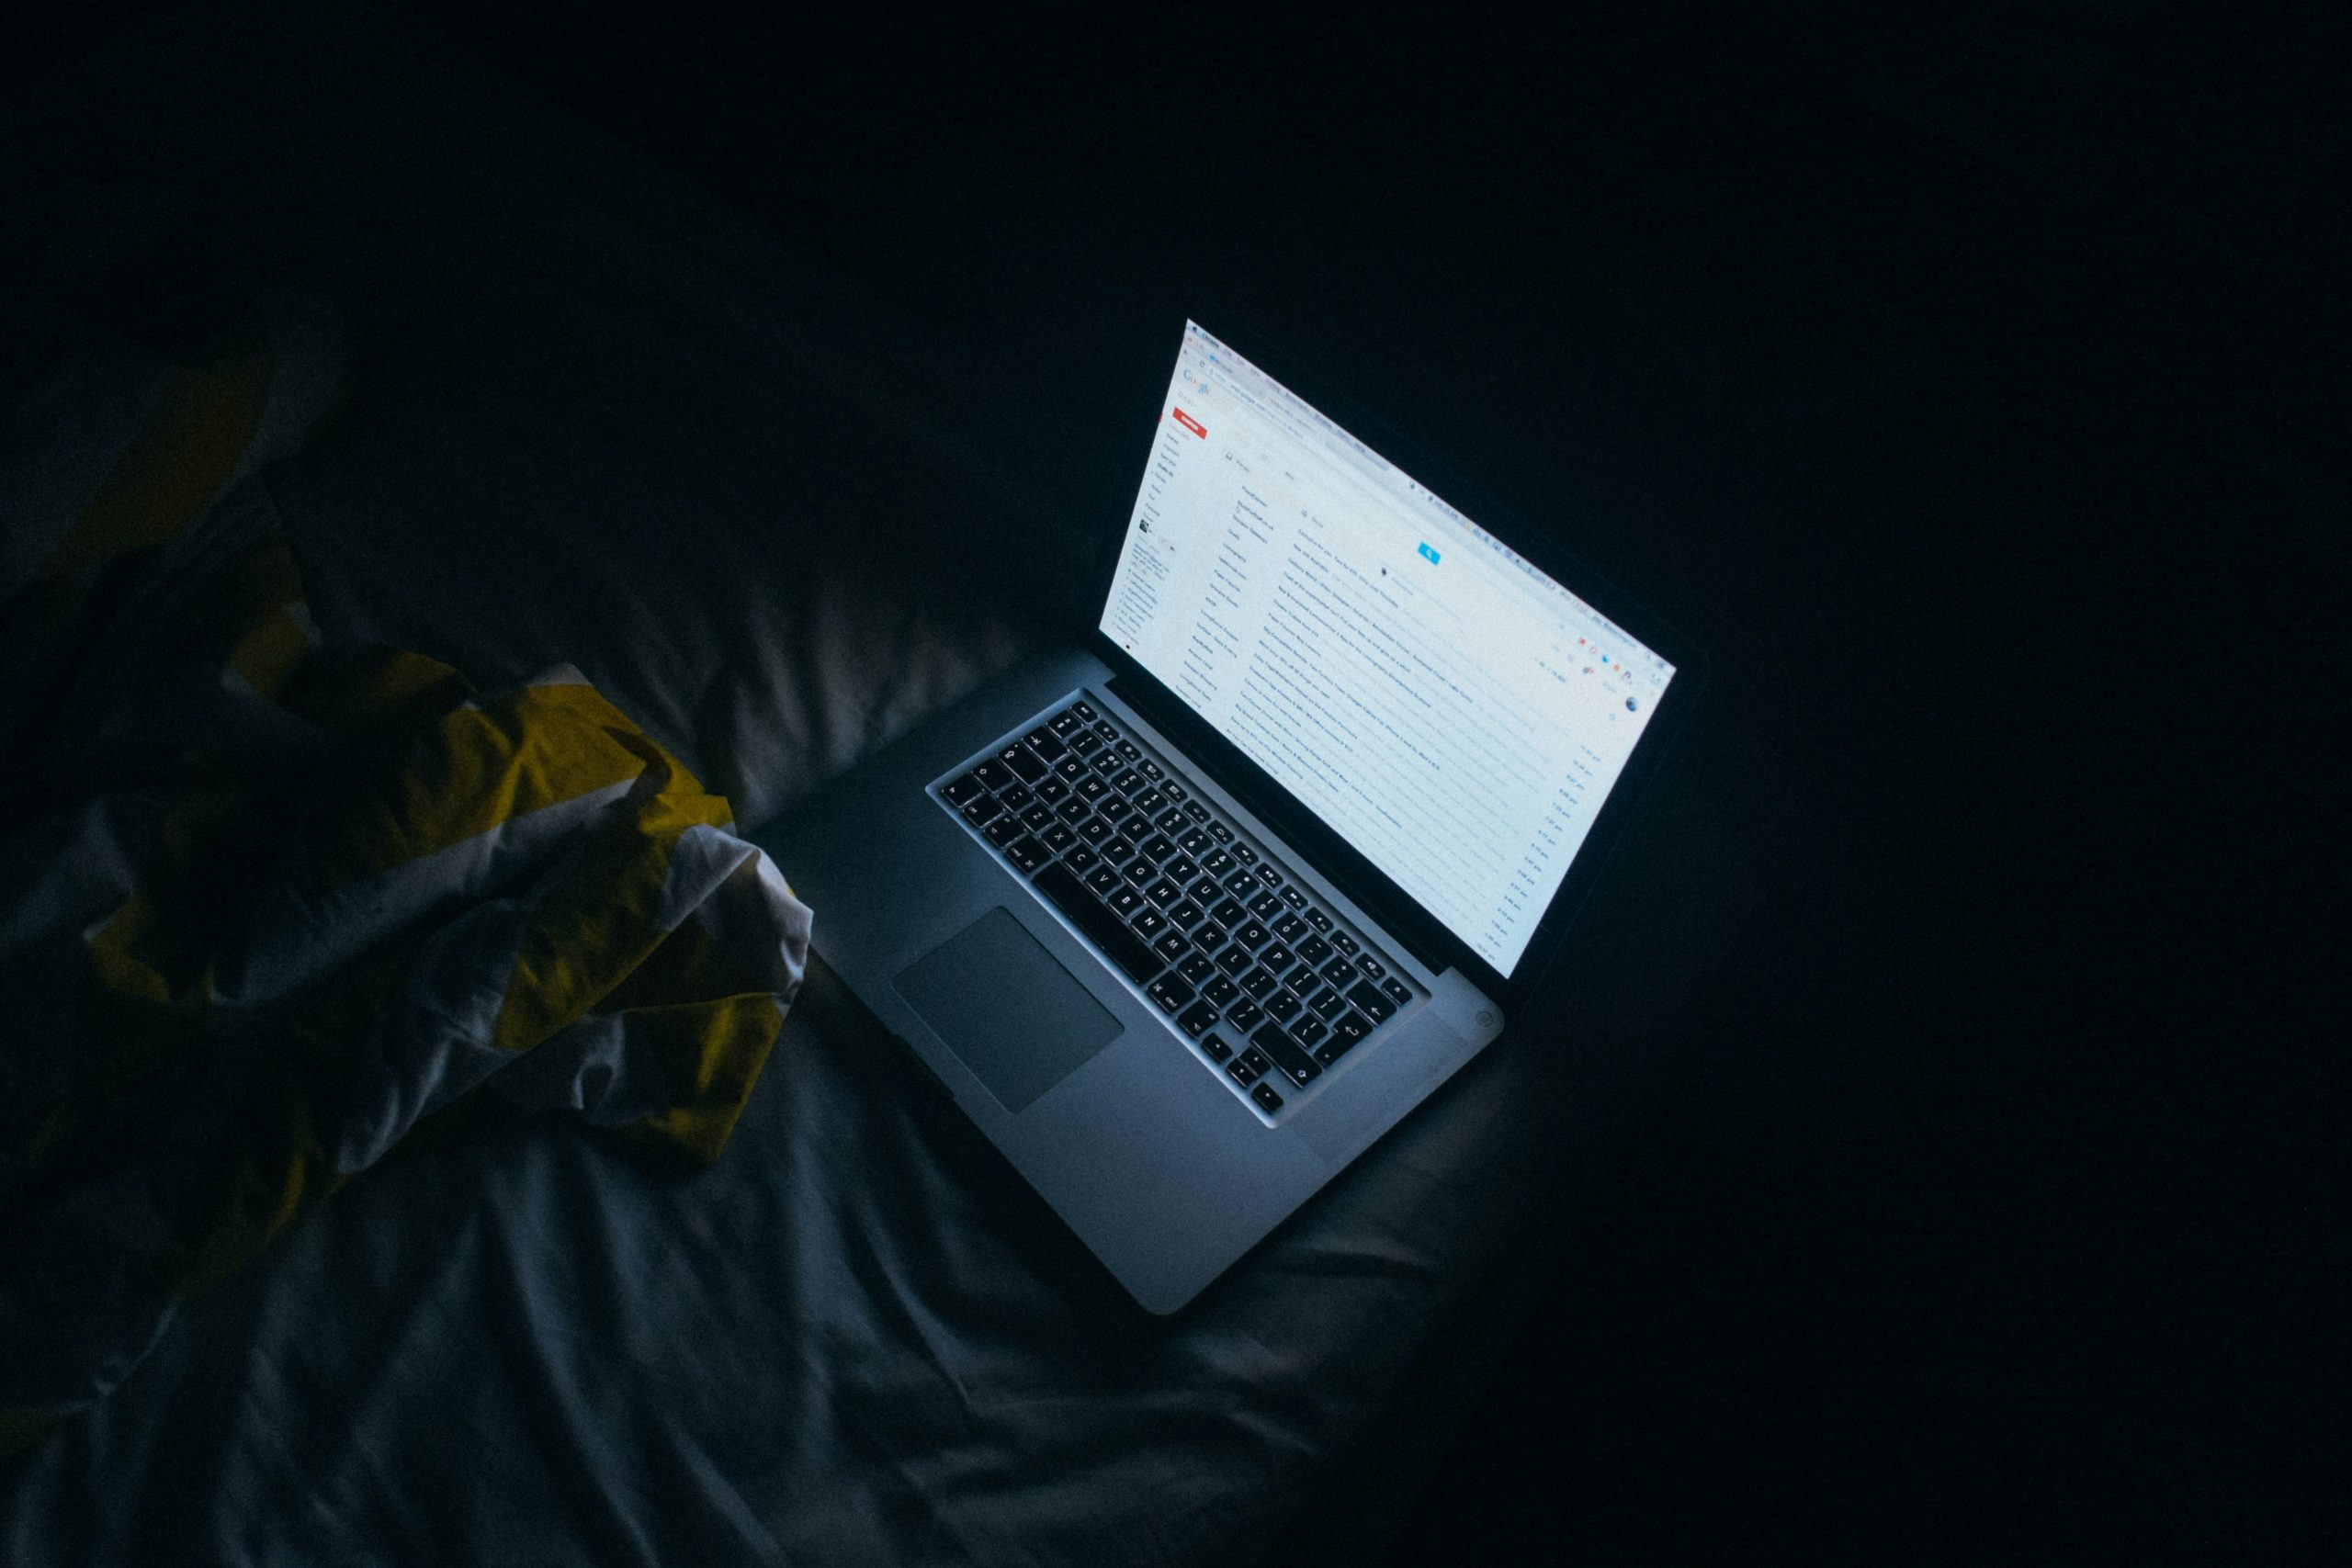 Dealing With Digital Addiction